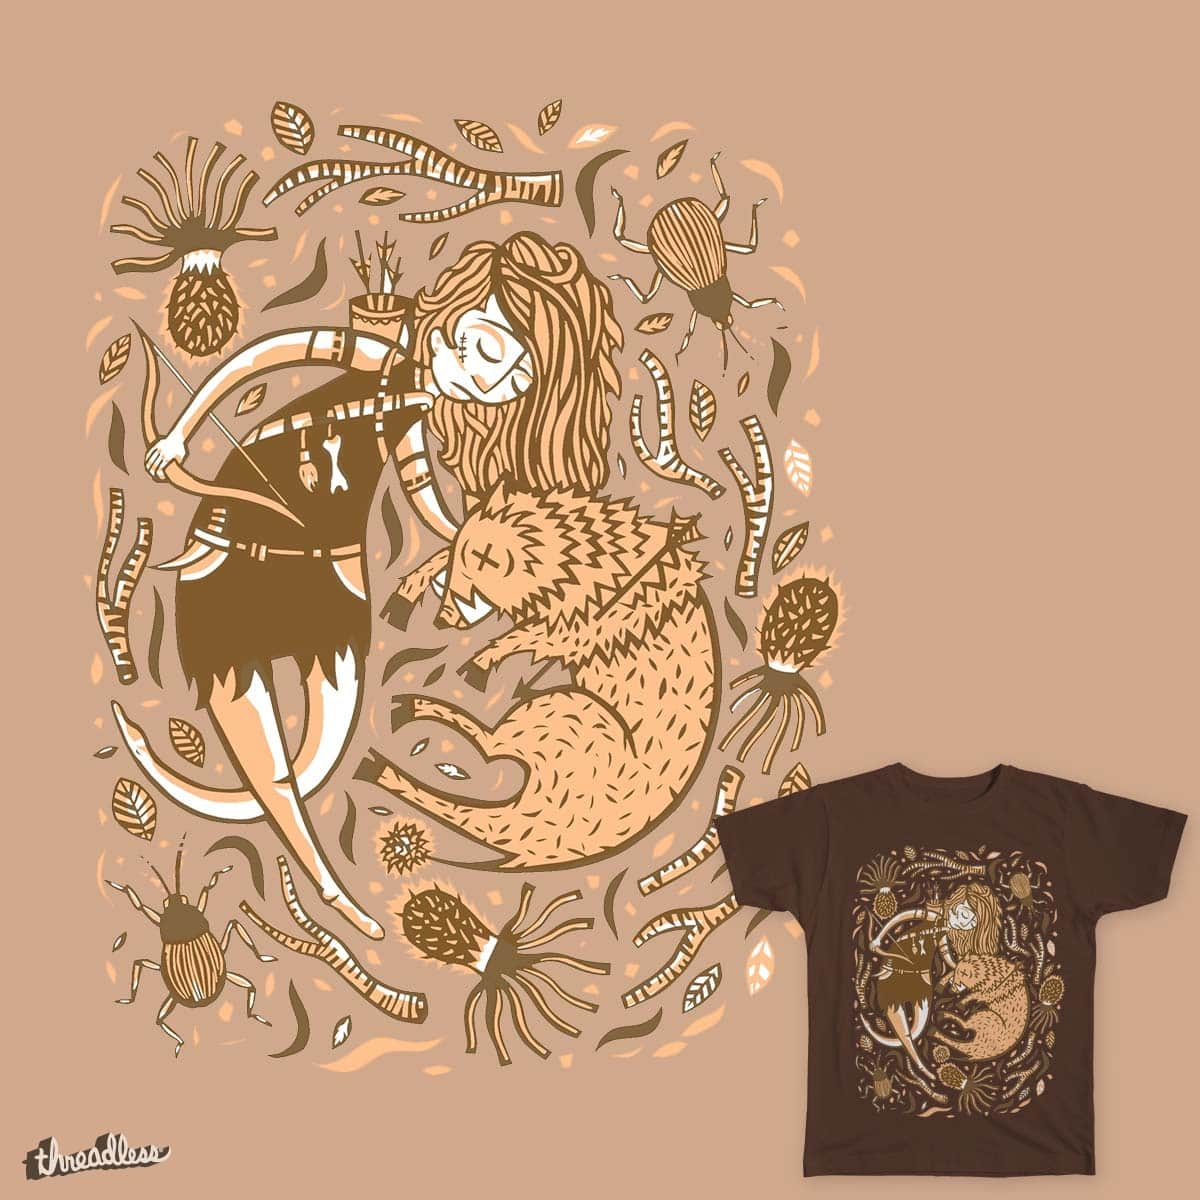 Huntress and the Boar by tbrault on Threadless